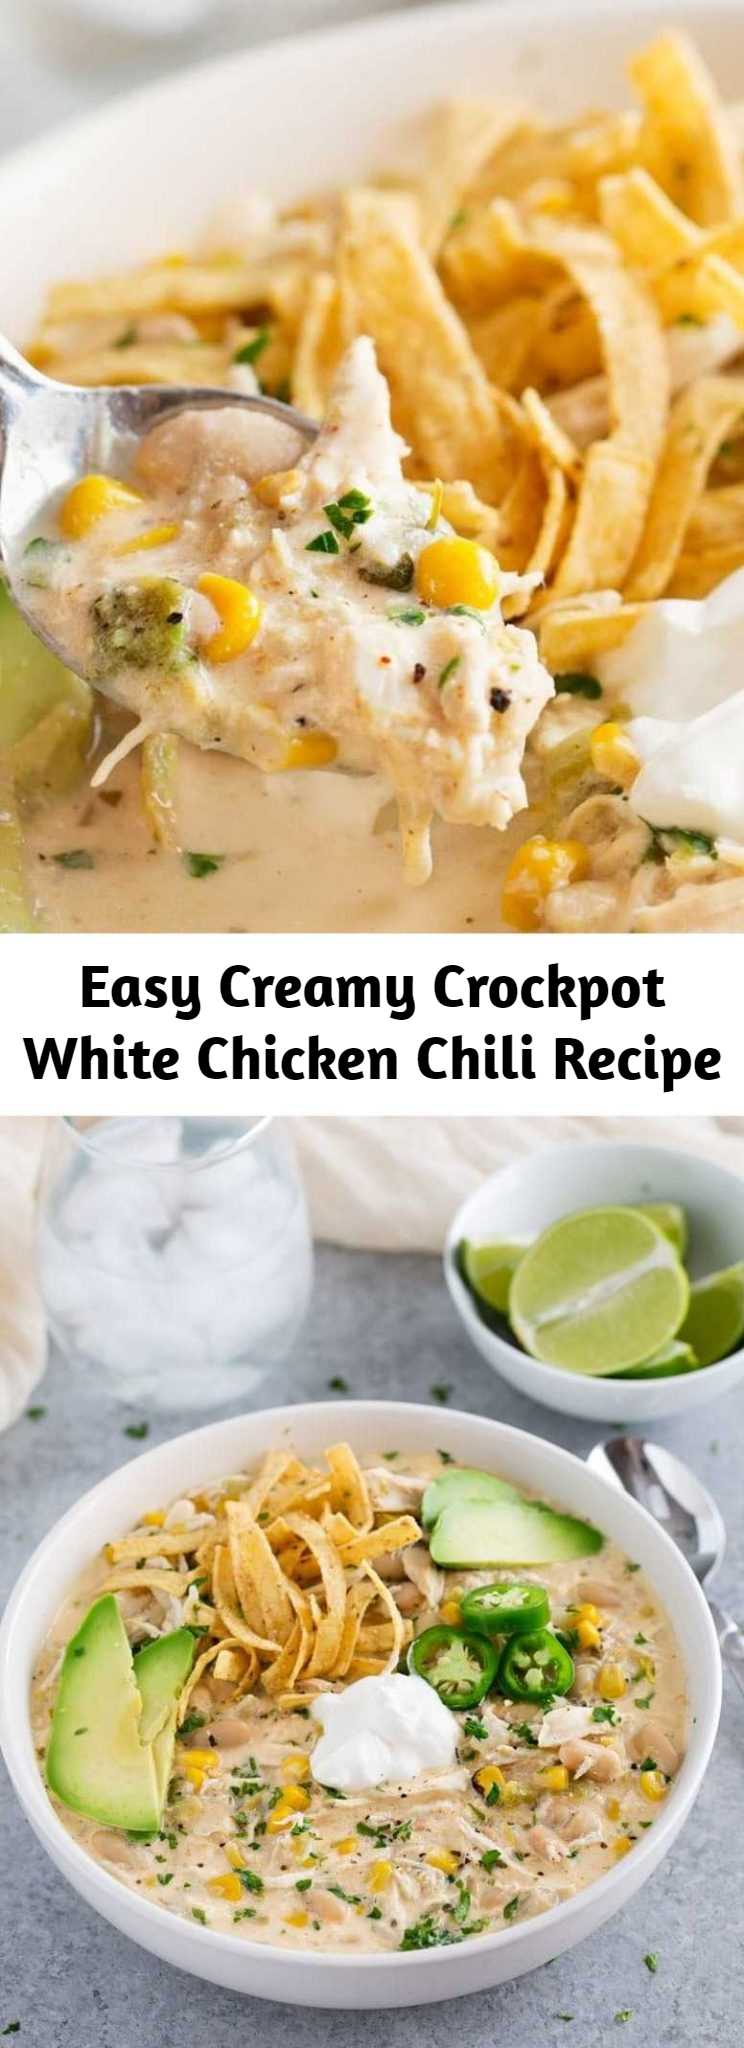 Easy Creamy Crockpot White Chicken Chili Recipe - This creamy white chicken chili is made super easy in your crockpot! Creamy with plenty of spice, it's the perfect companion on a chilly night!